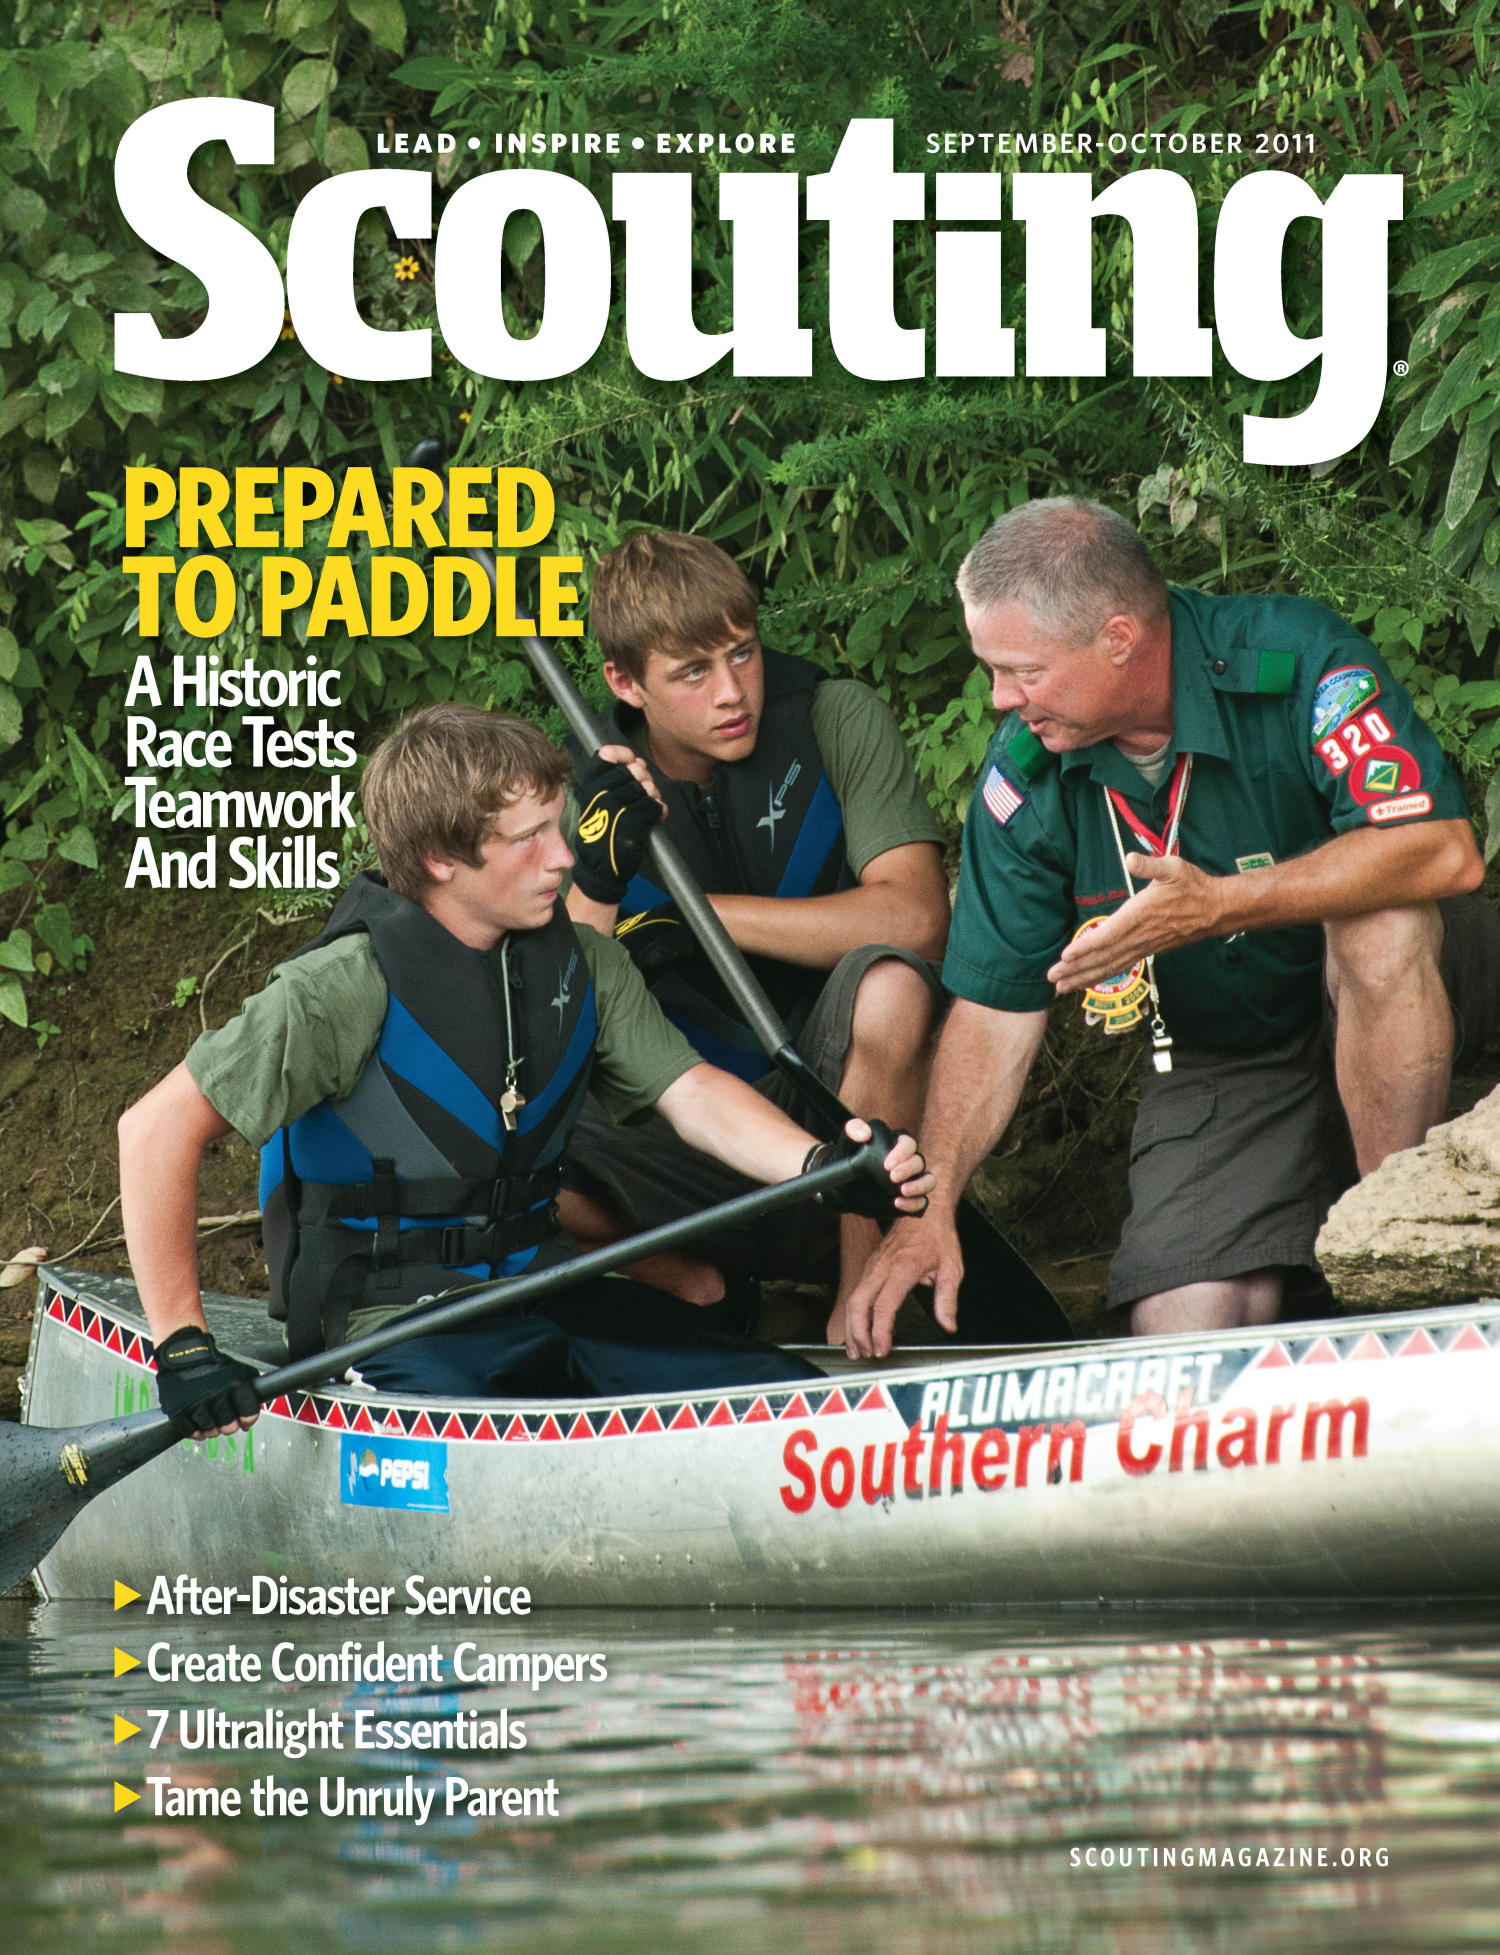 Scouting, Volume 99, Number 4, September-October 2011                                                                                                      Front Cover